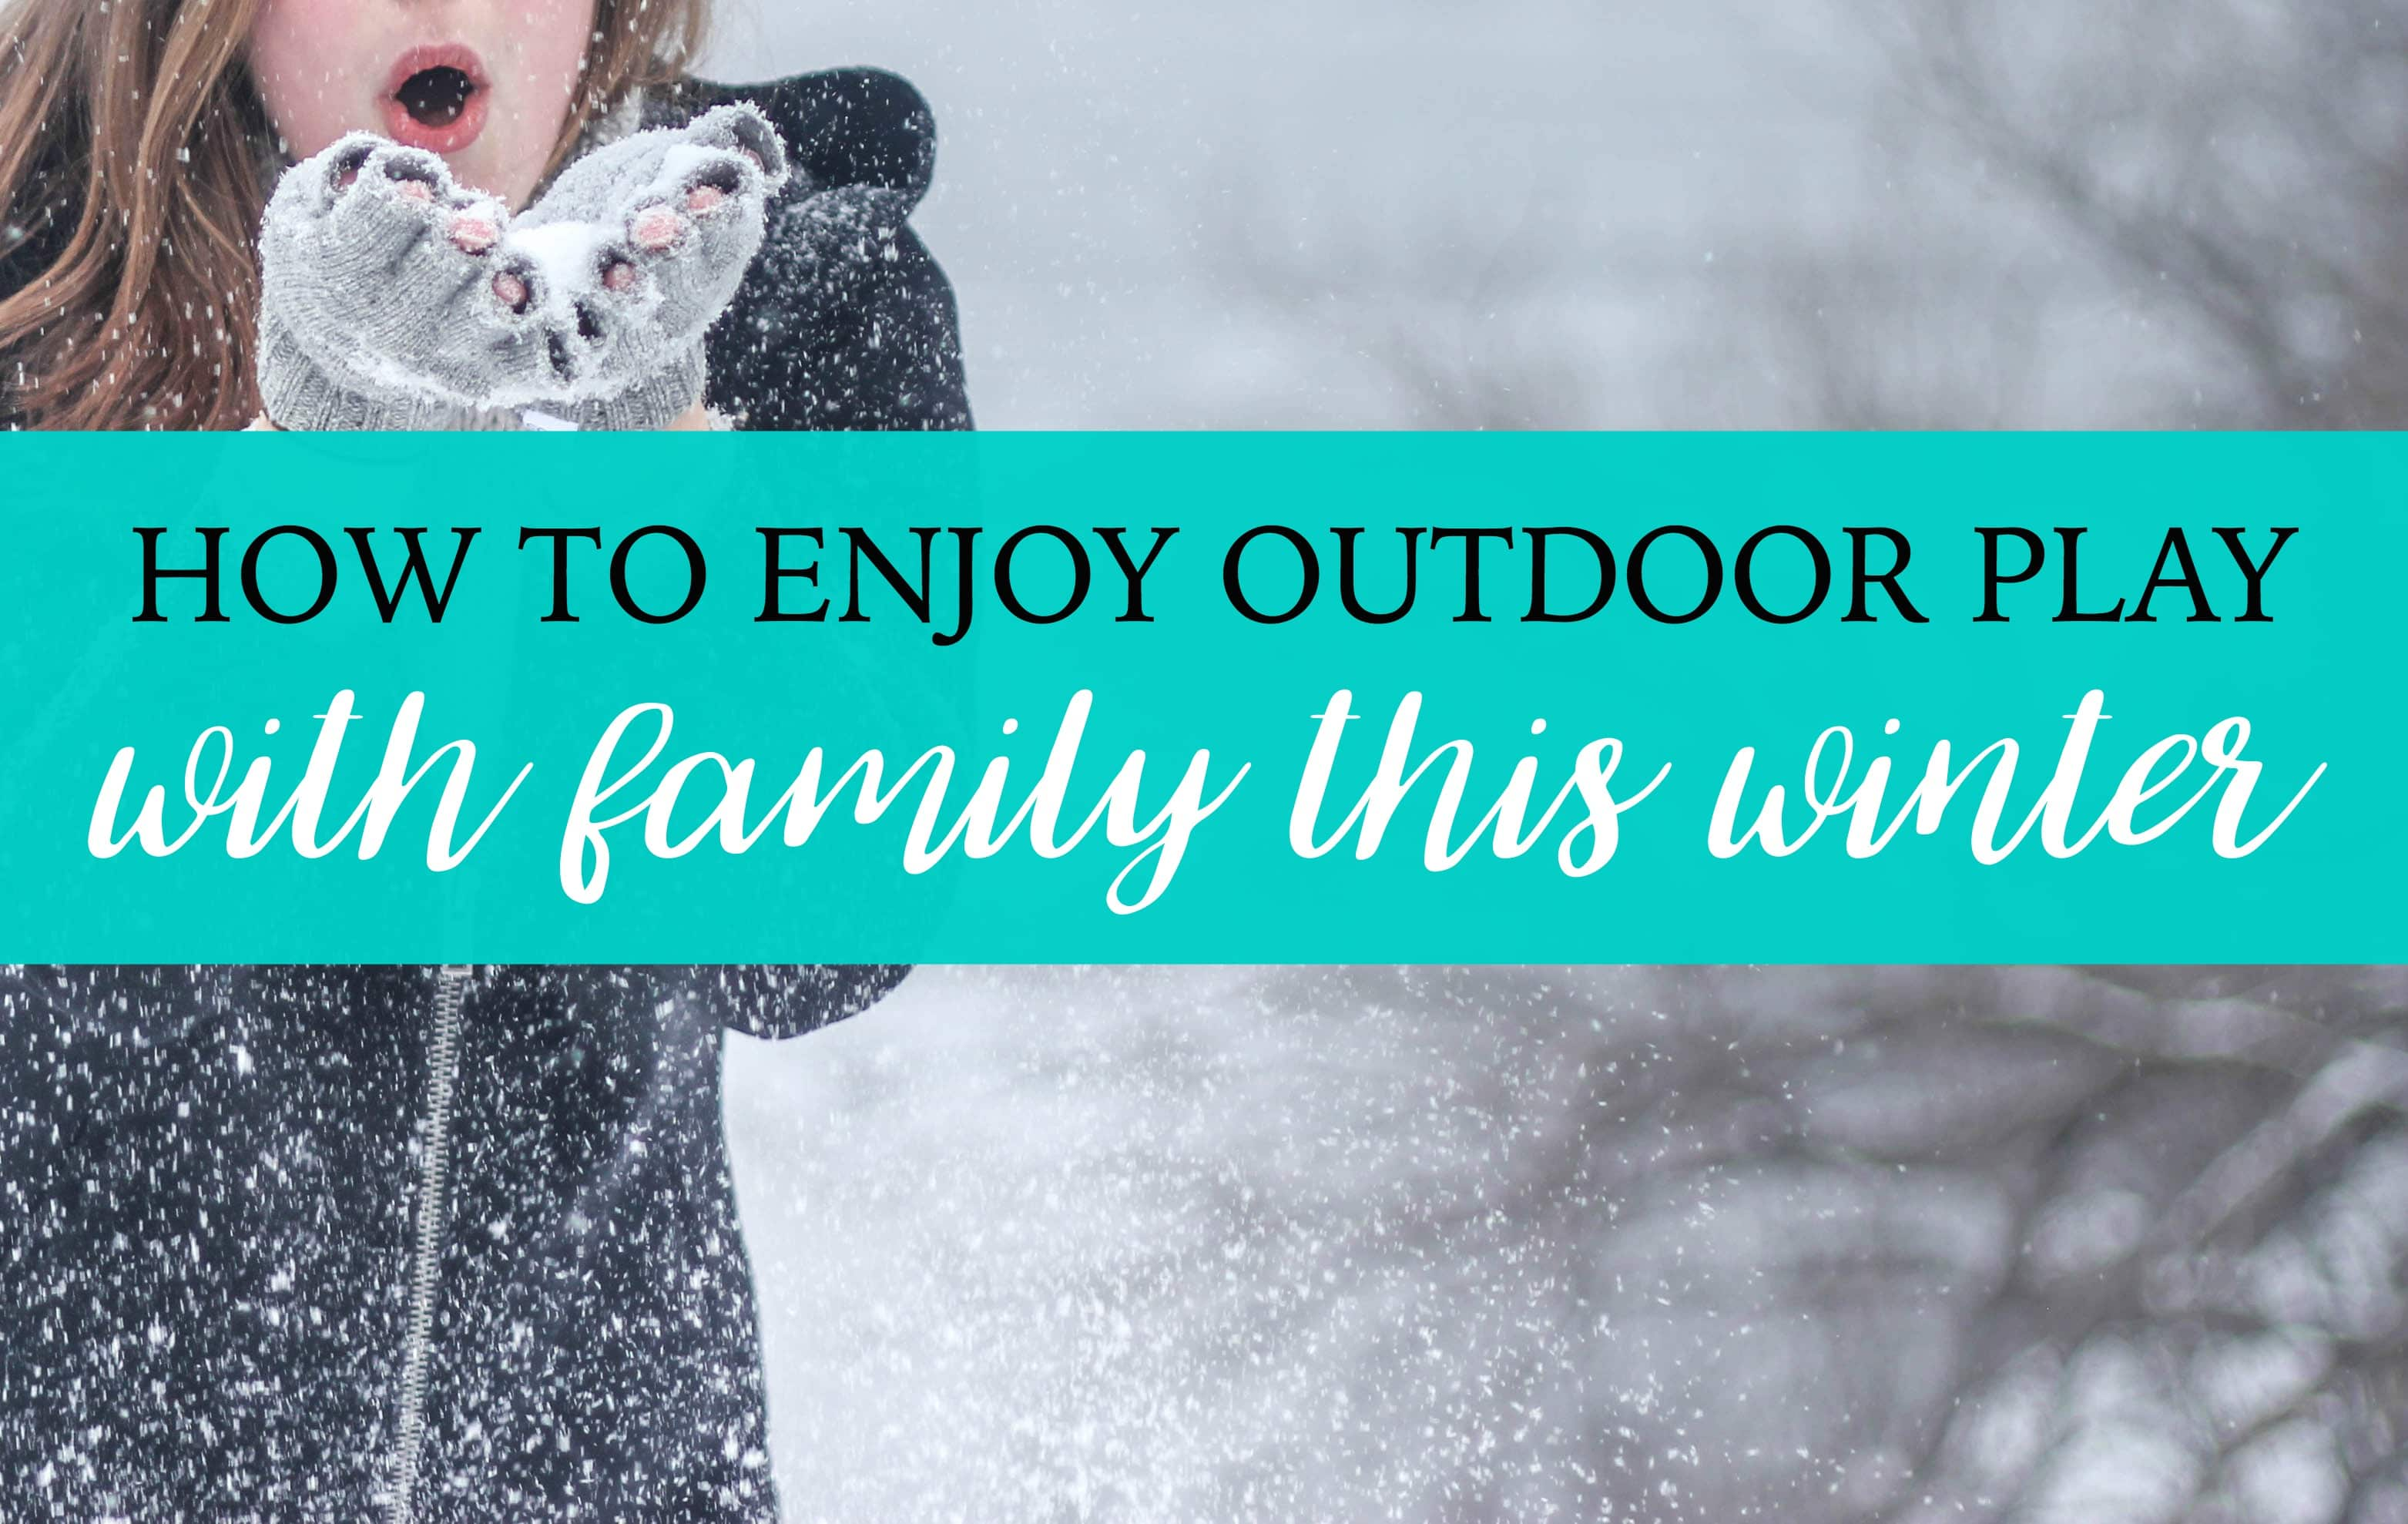 How to Enjoy Outdoor Play with Family This Winter